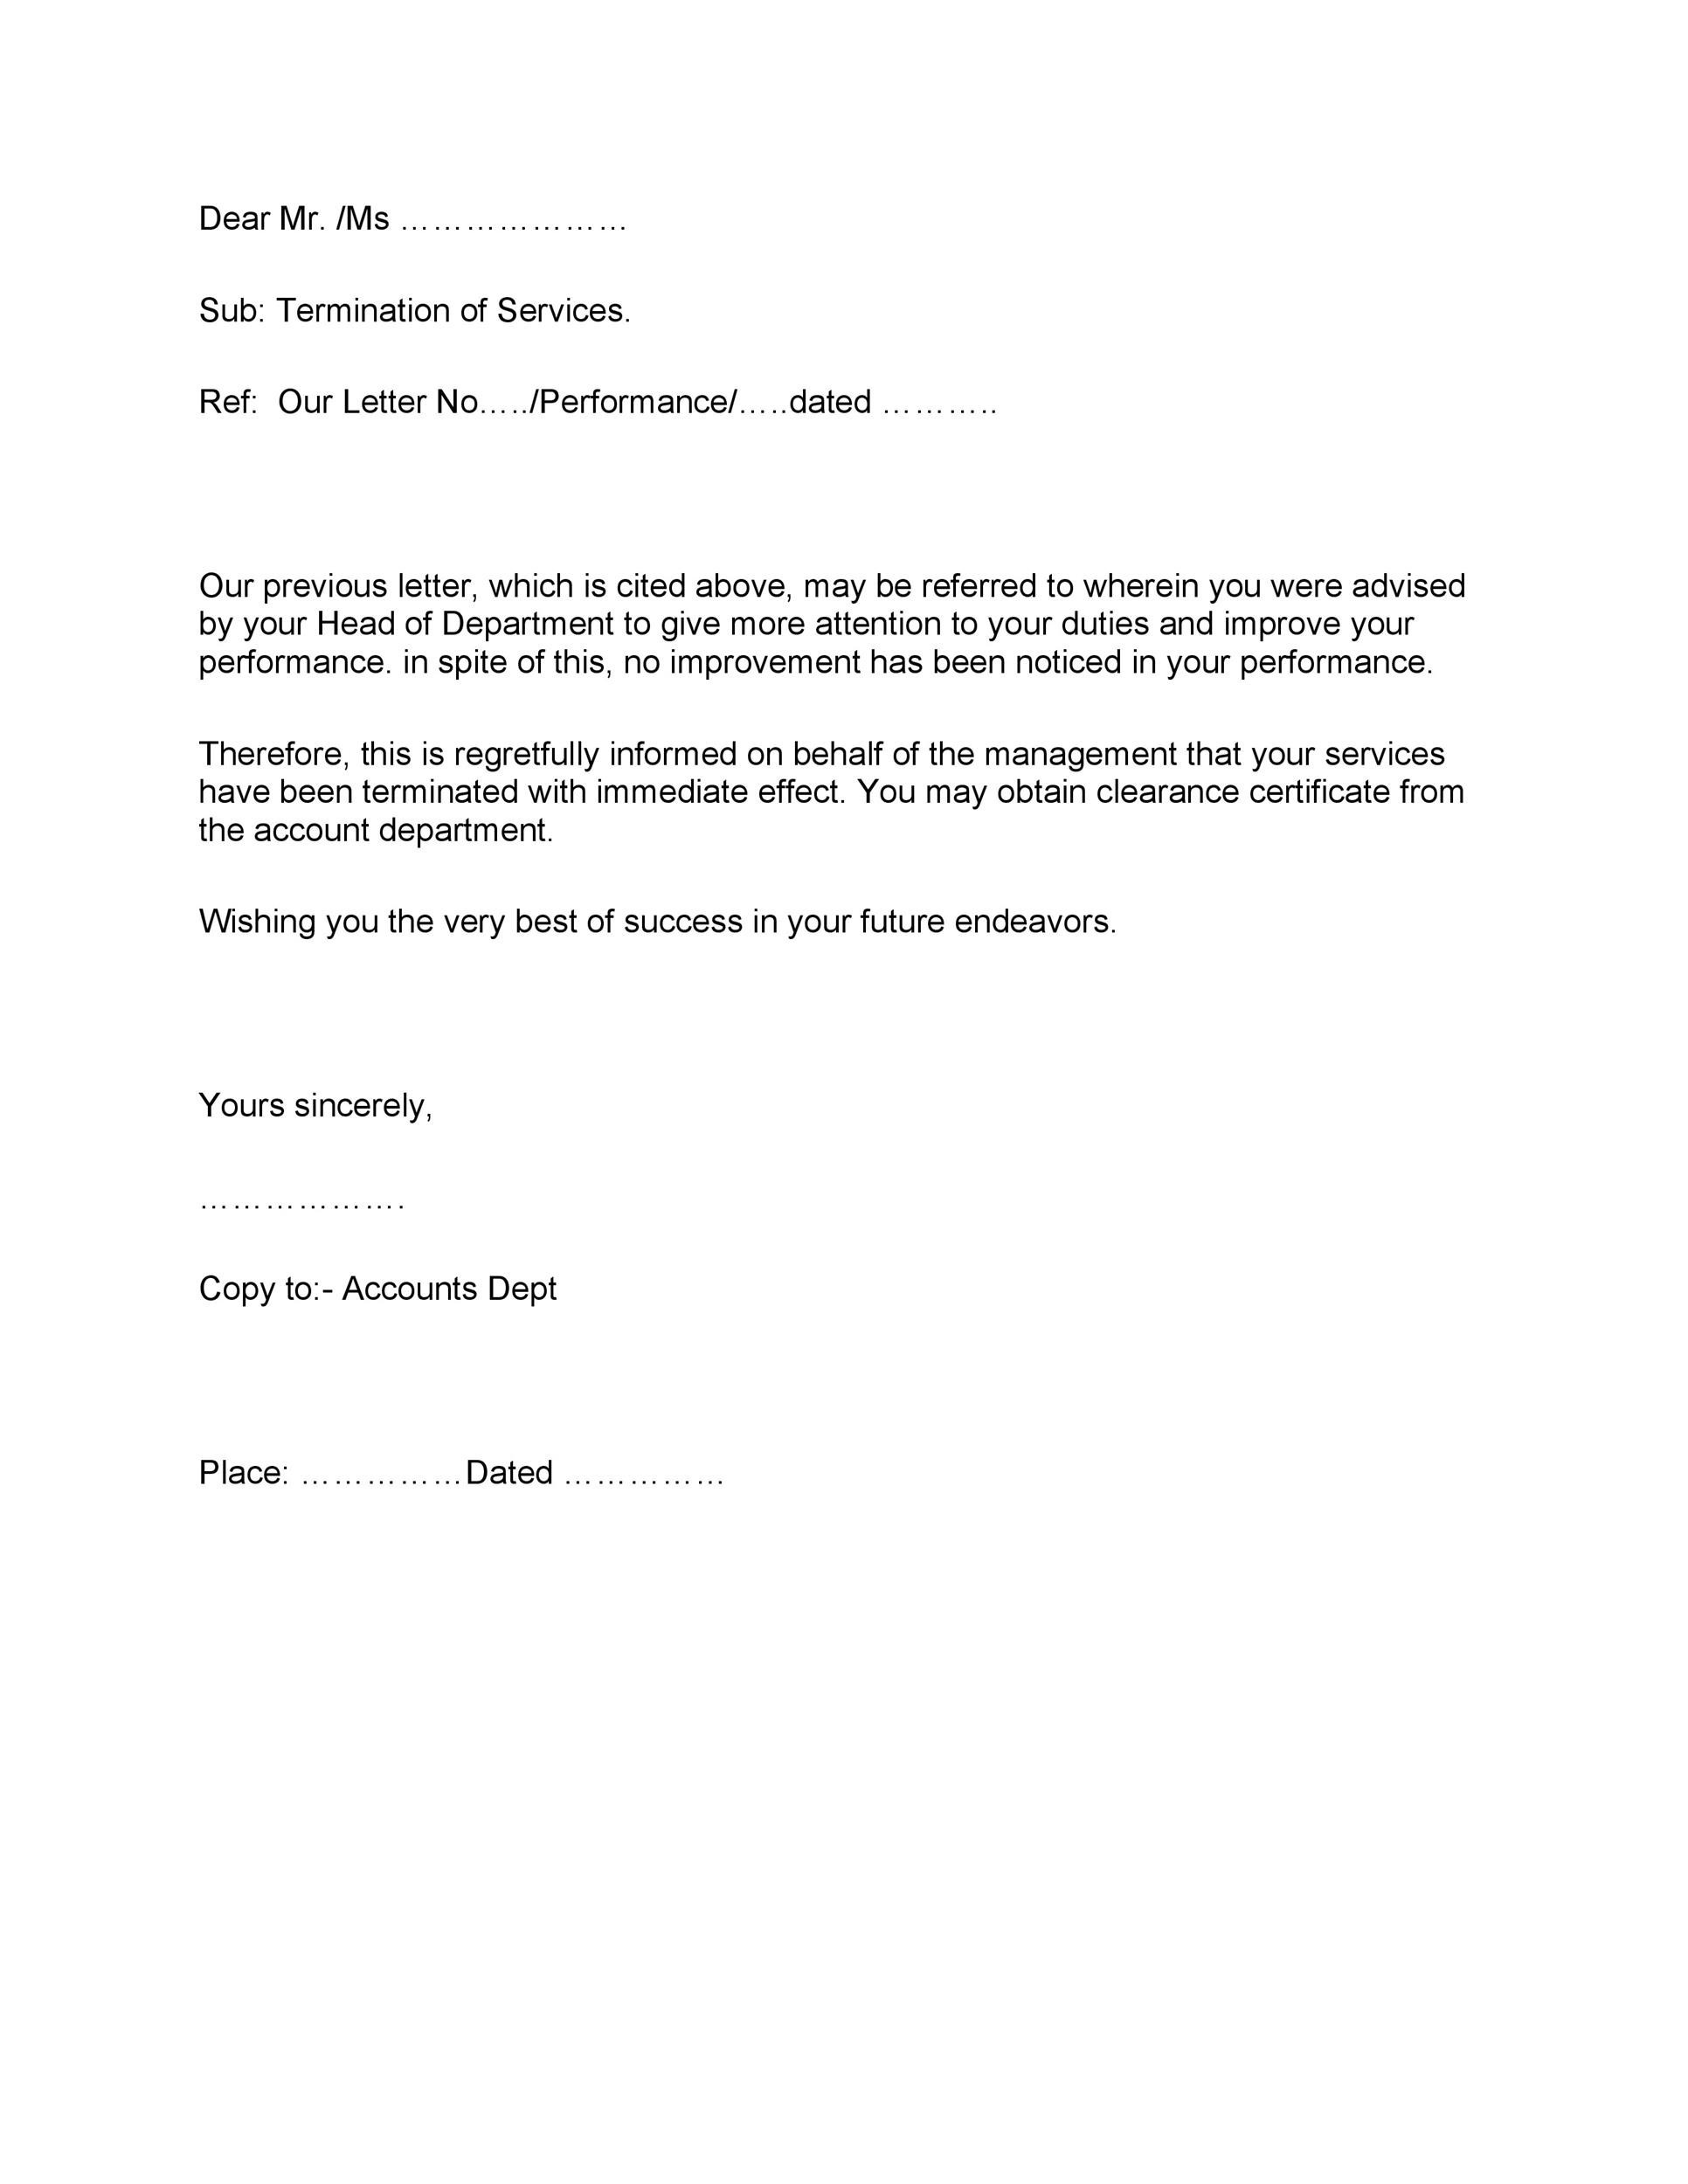 Termination Letter Samples | 35 Perfect Termination Letter Samples Lease Employee Contract